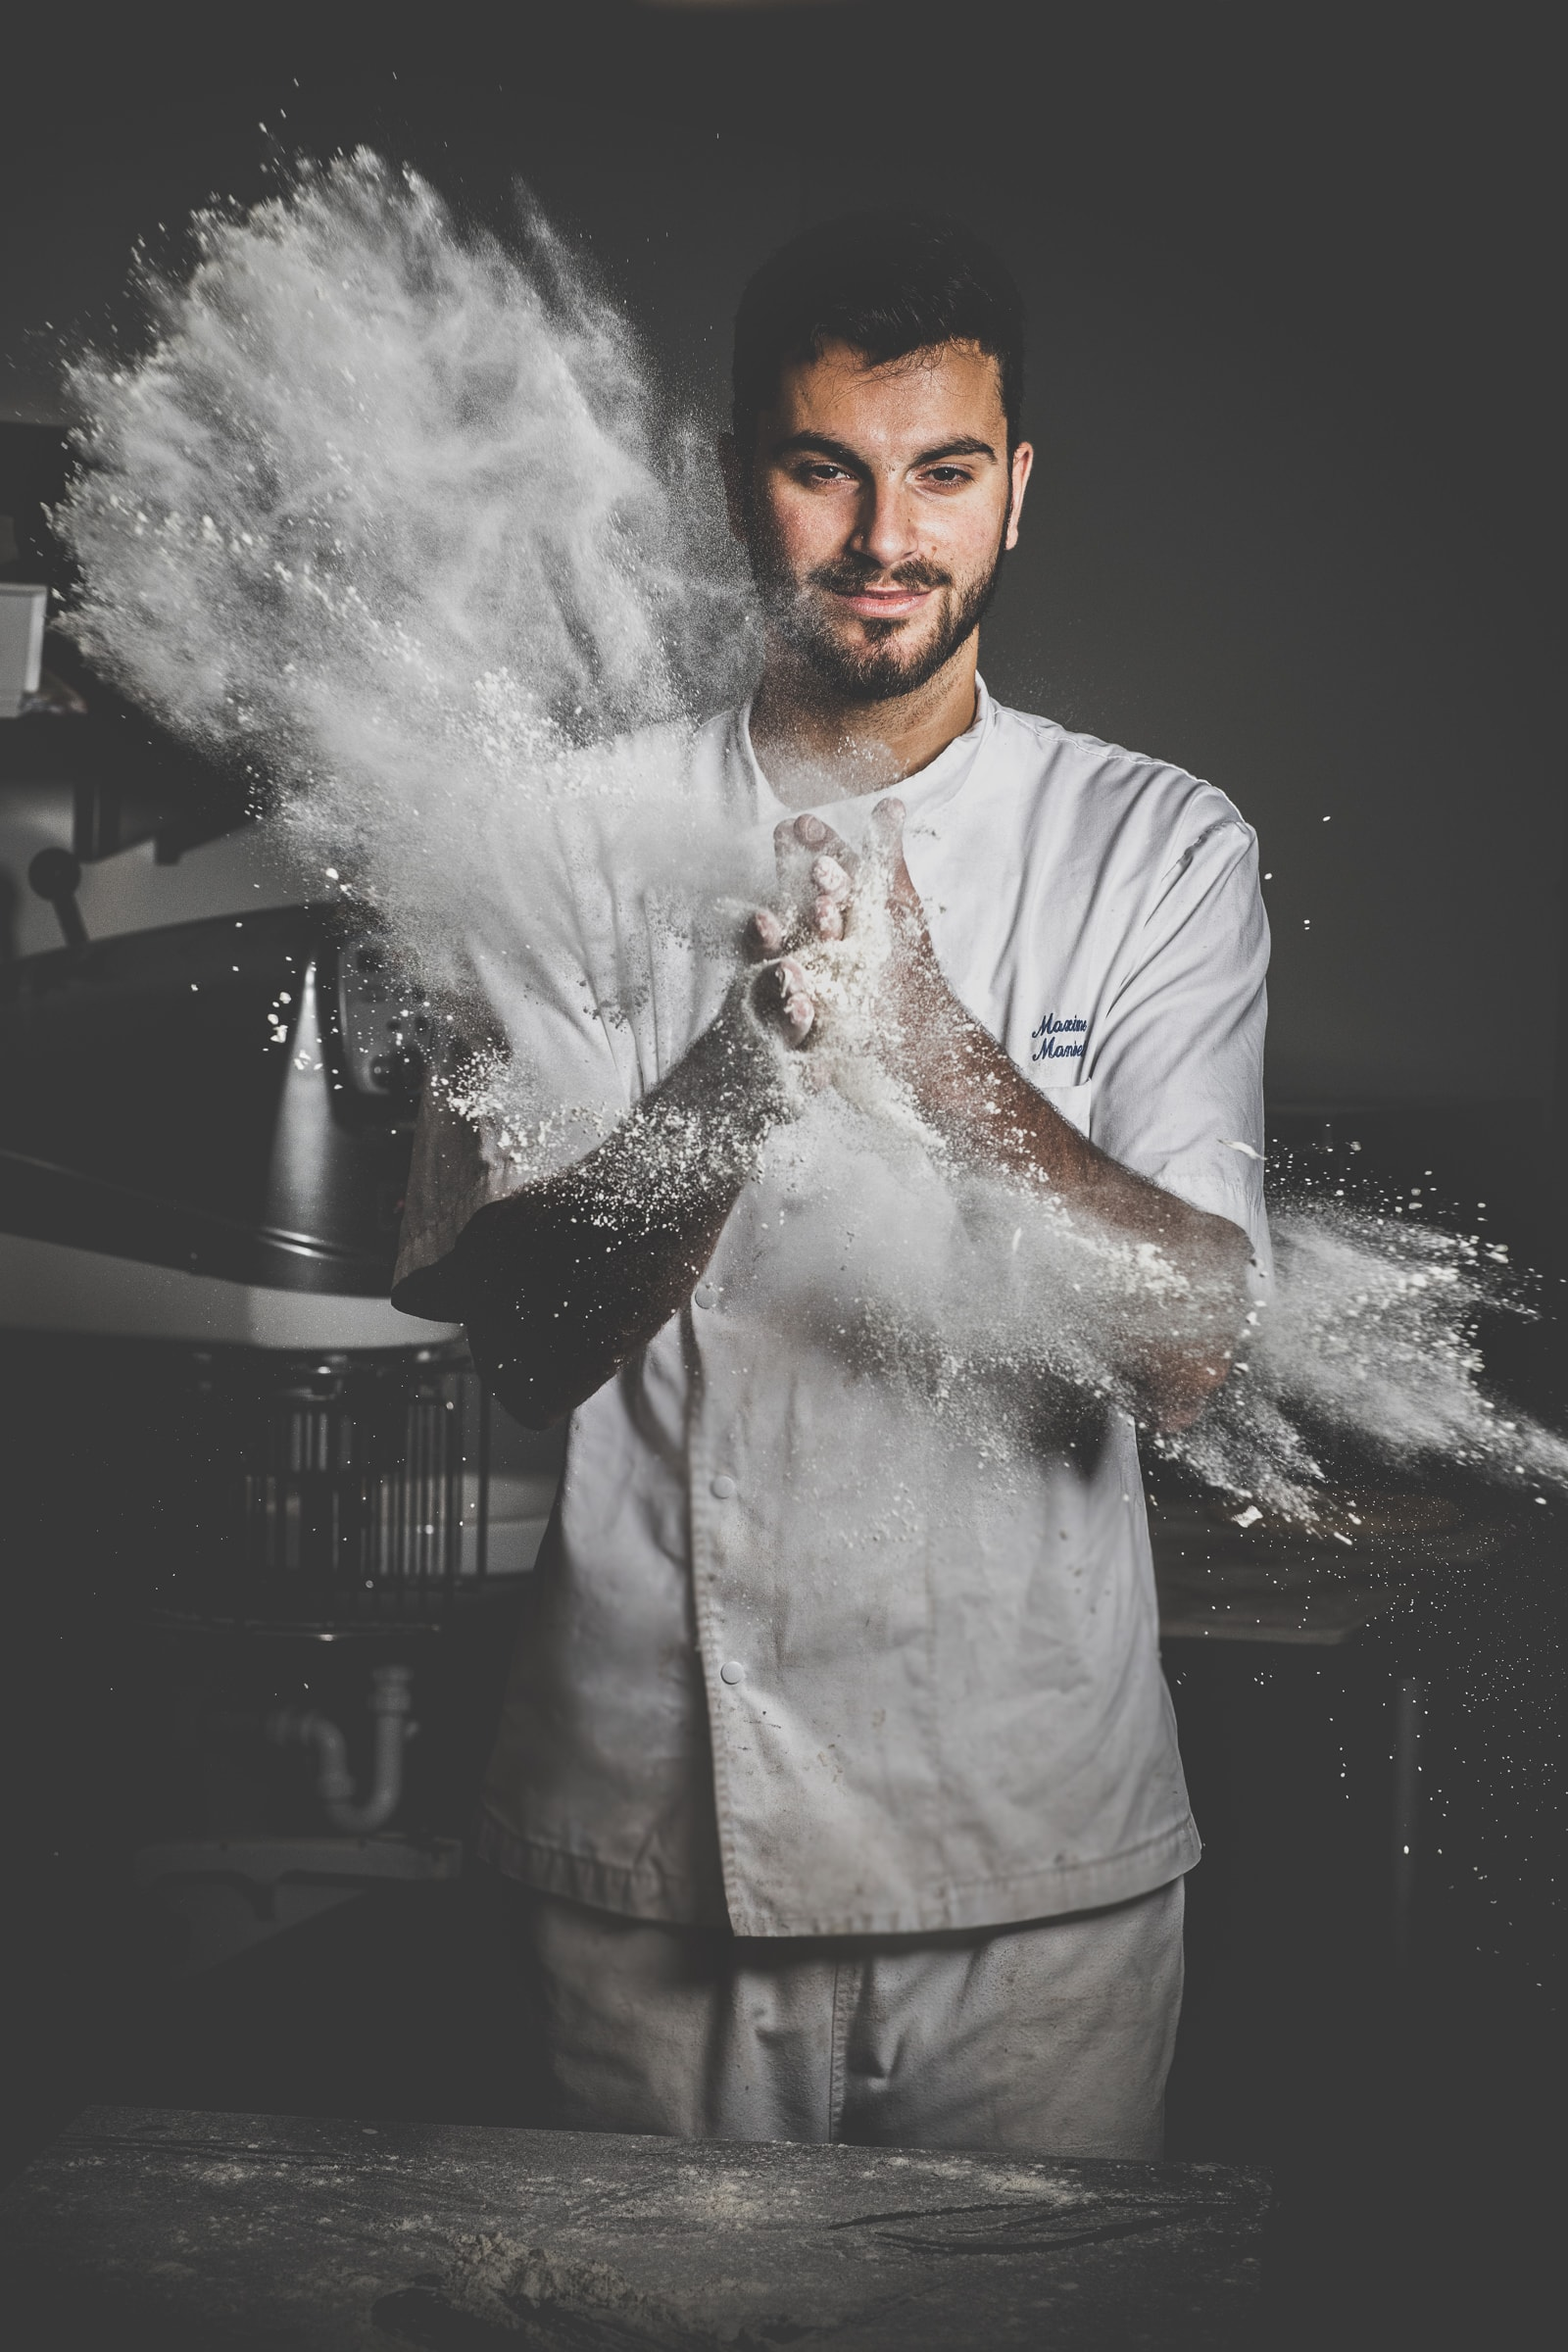 small business photography in Melbourne for bakery - creative portraits of business owner - flour shot